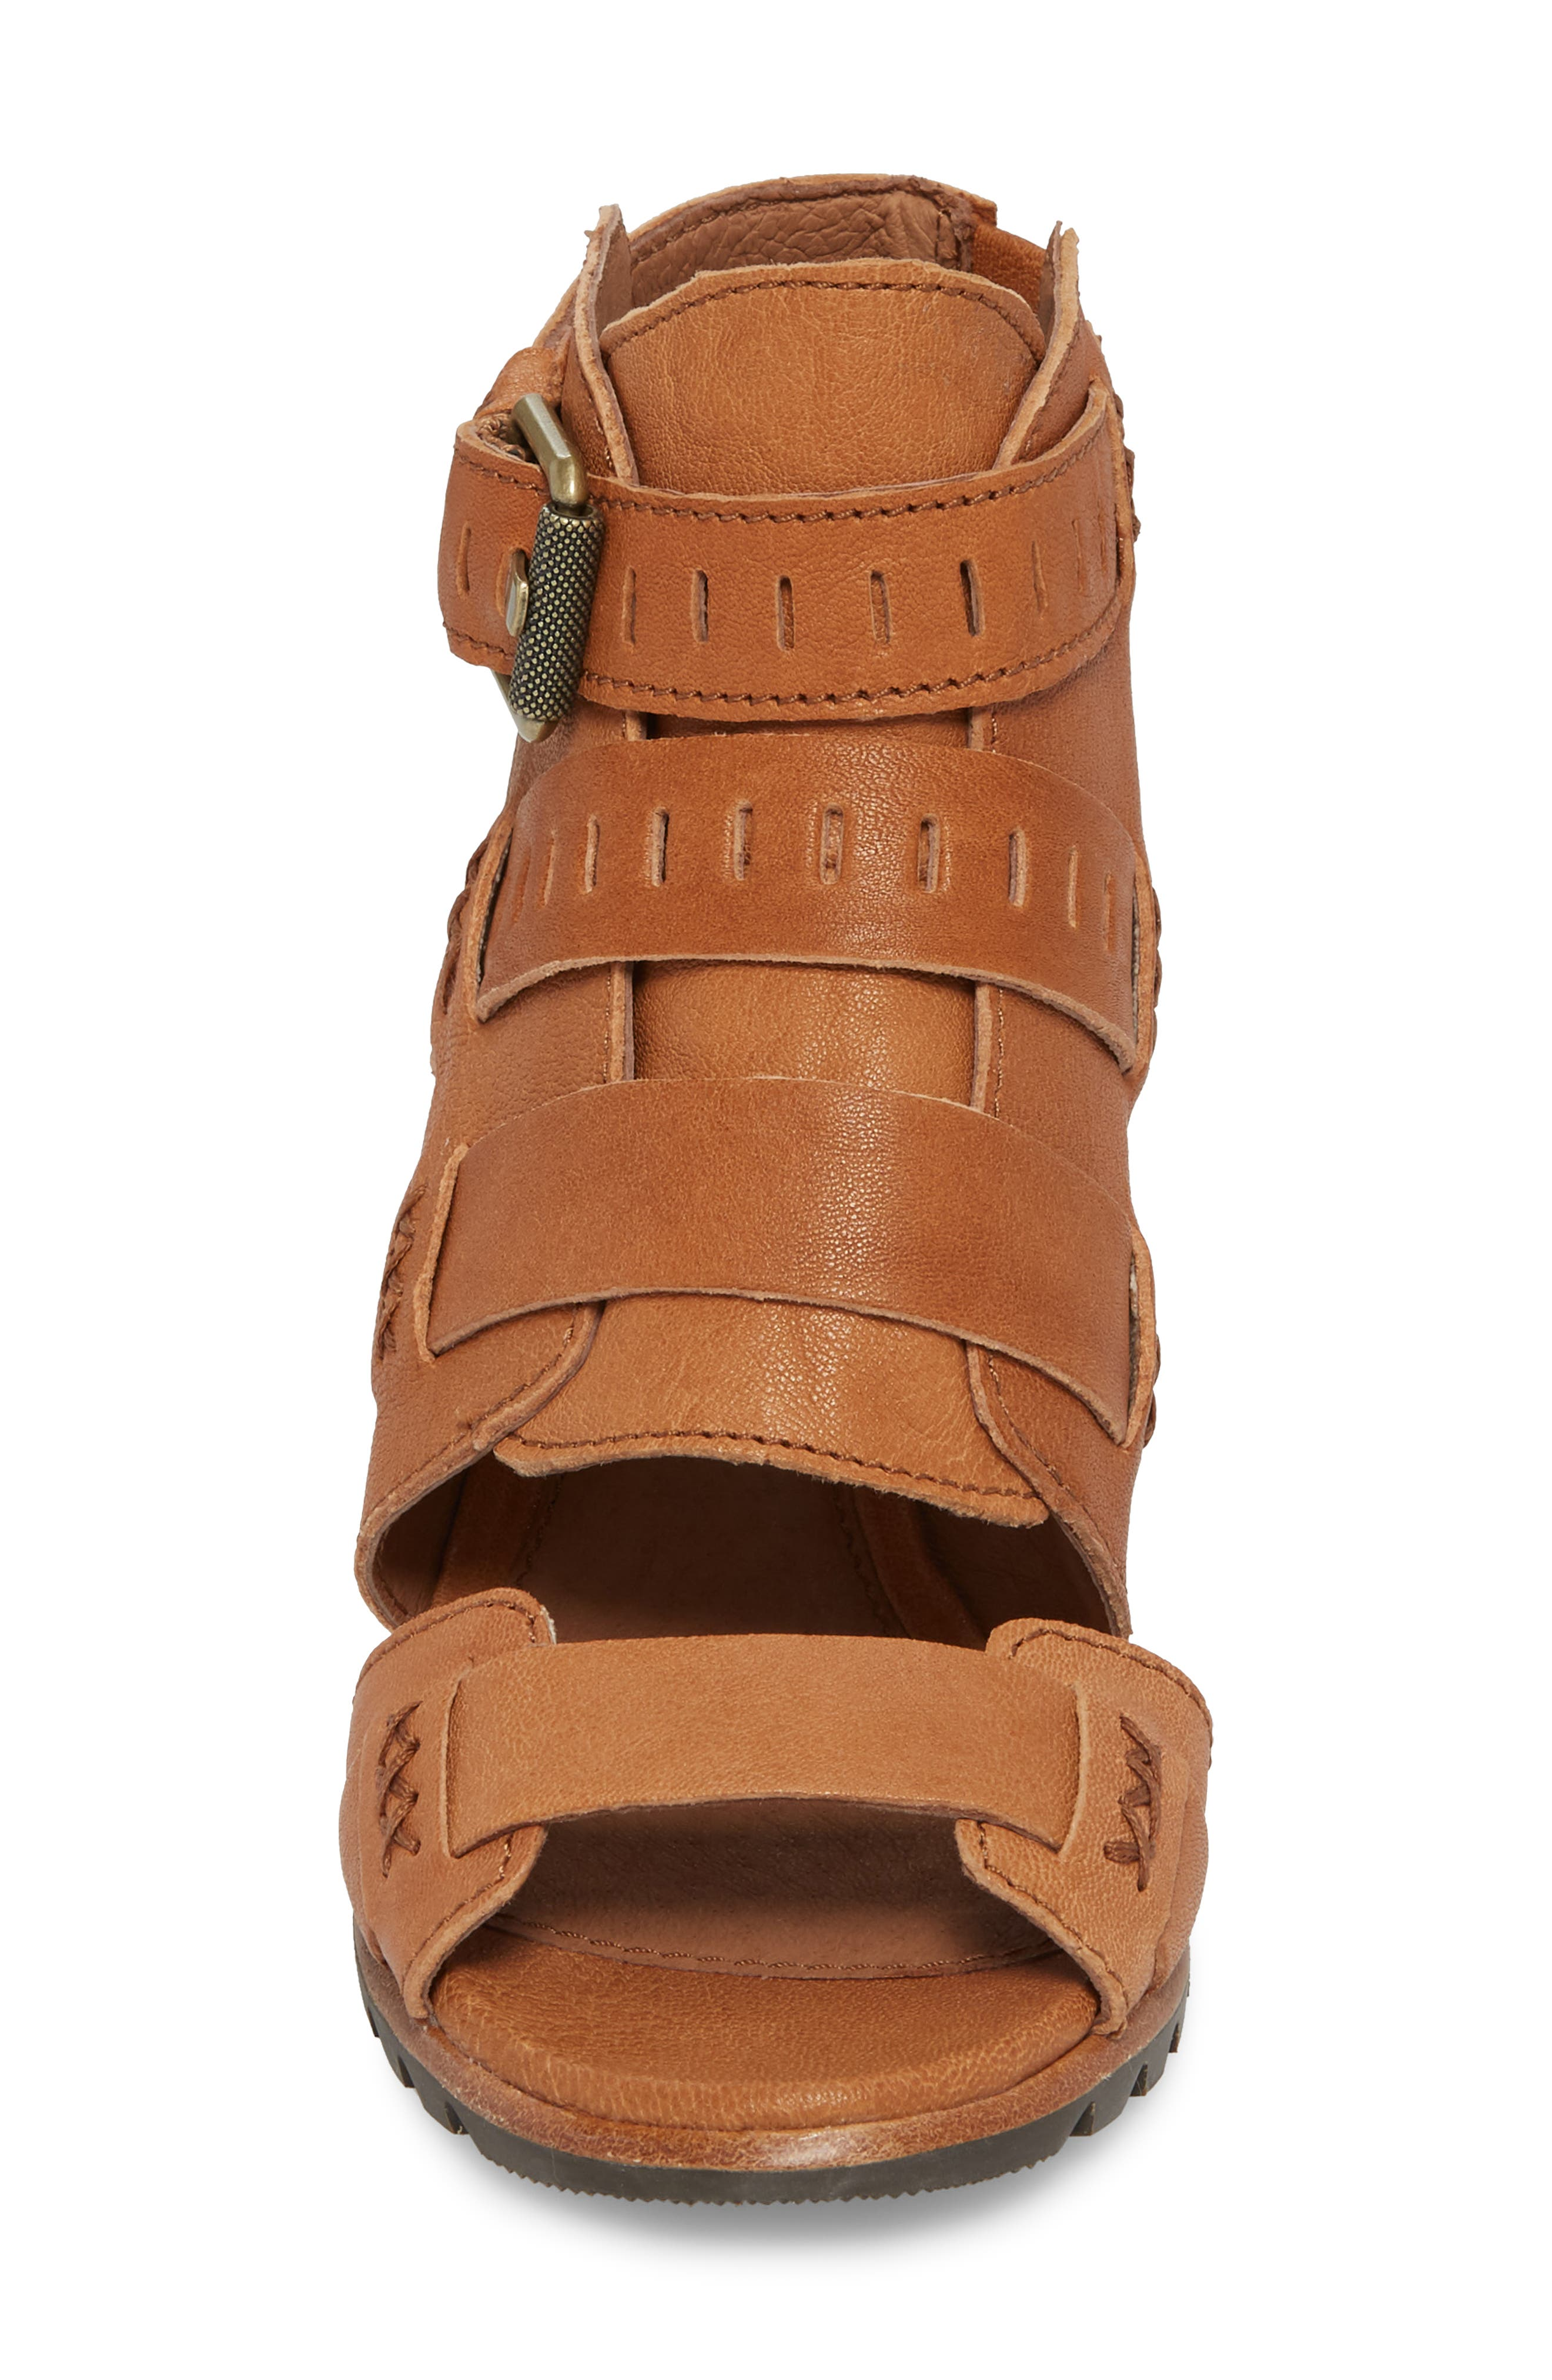 Nadia Buckle Bootie,                             Alternate thumbnail 4, color,